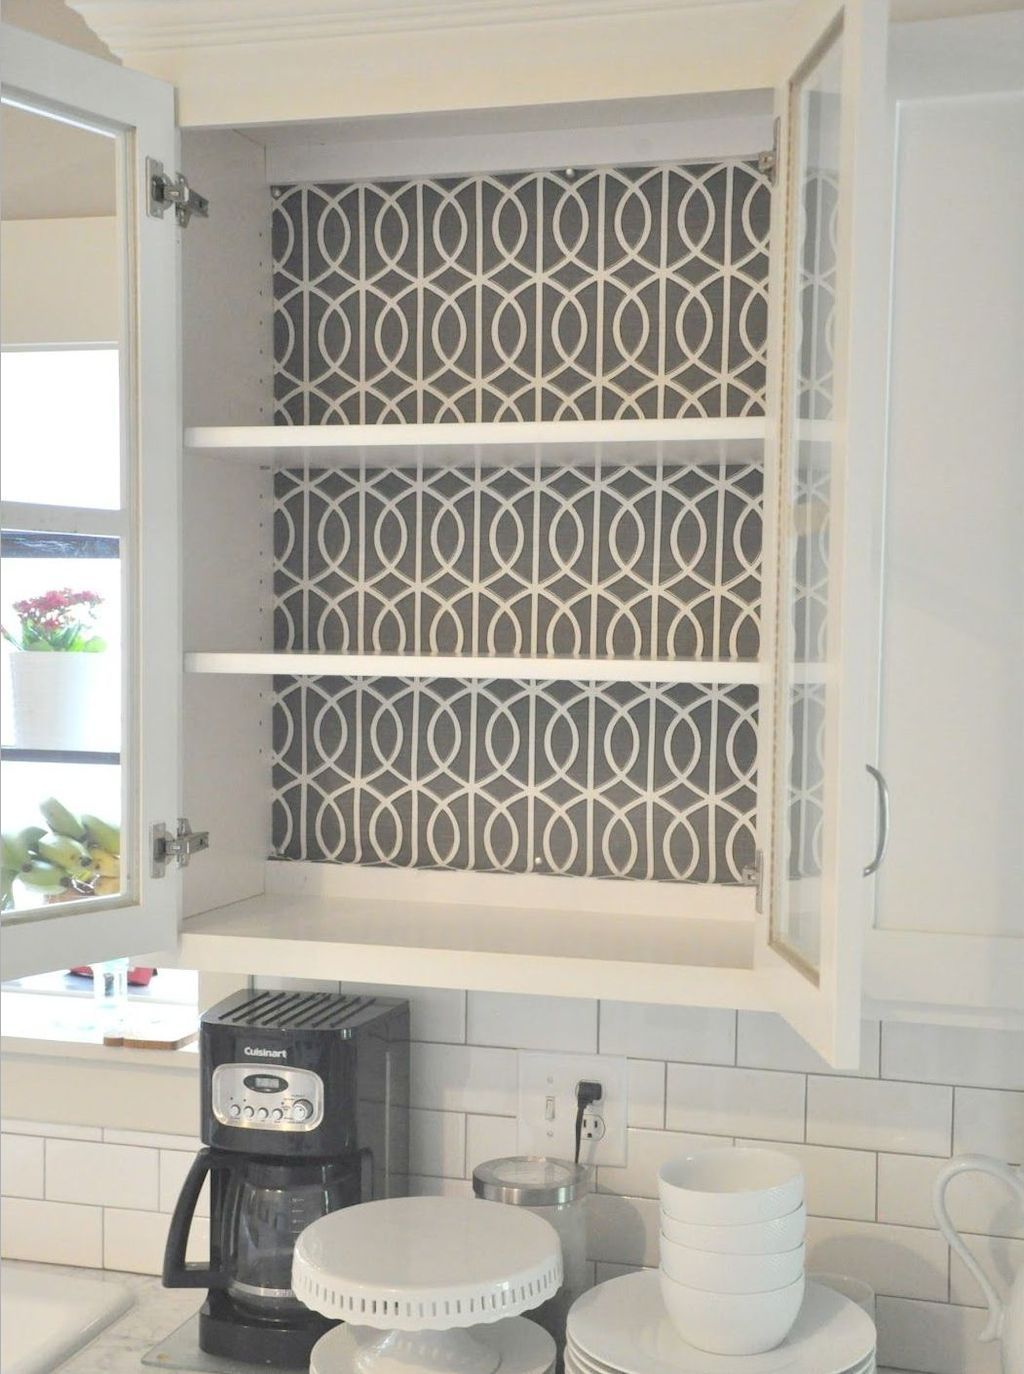 Makeover Your Kitchen Cabinets For More Storage And More Floor Space Home To Z Glass Front Cabinets Kitchen Renovation Diy Kitchen